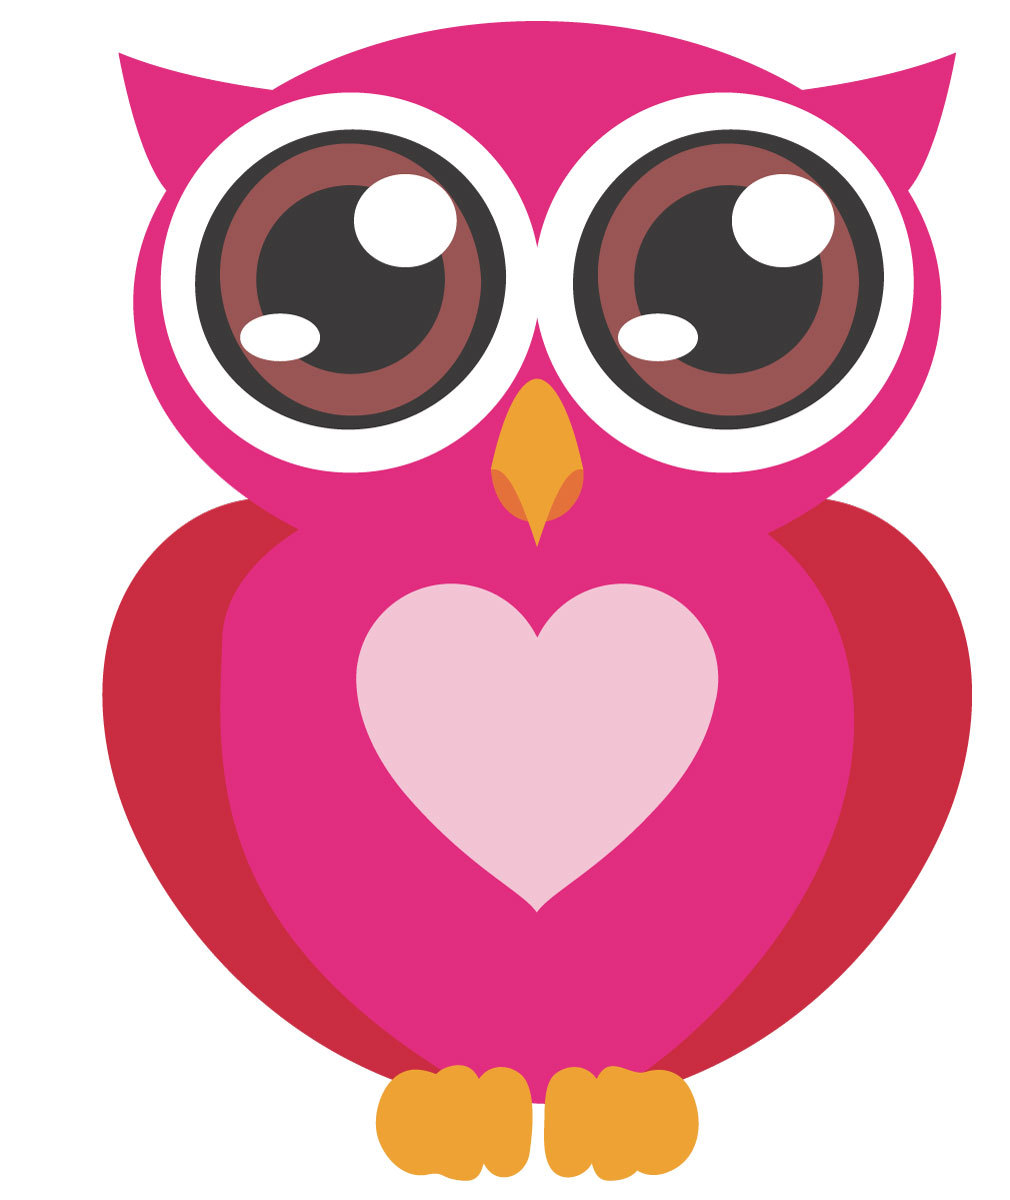 Clip Art Owl Images Clipart pink baby owl clipart panda free images